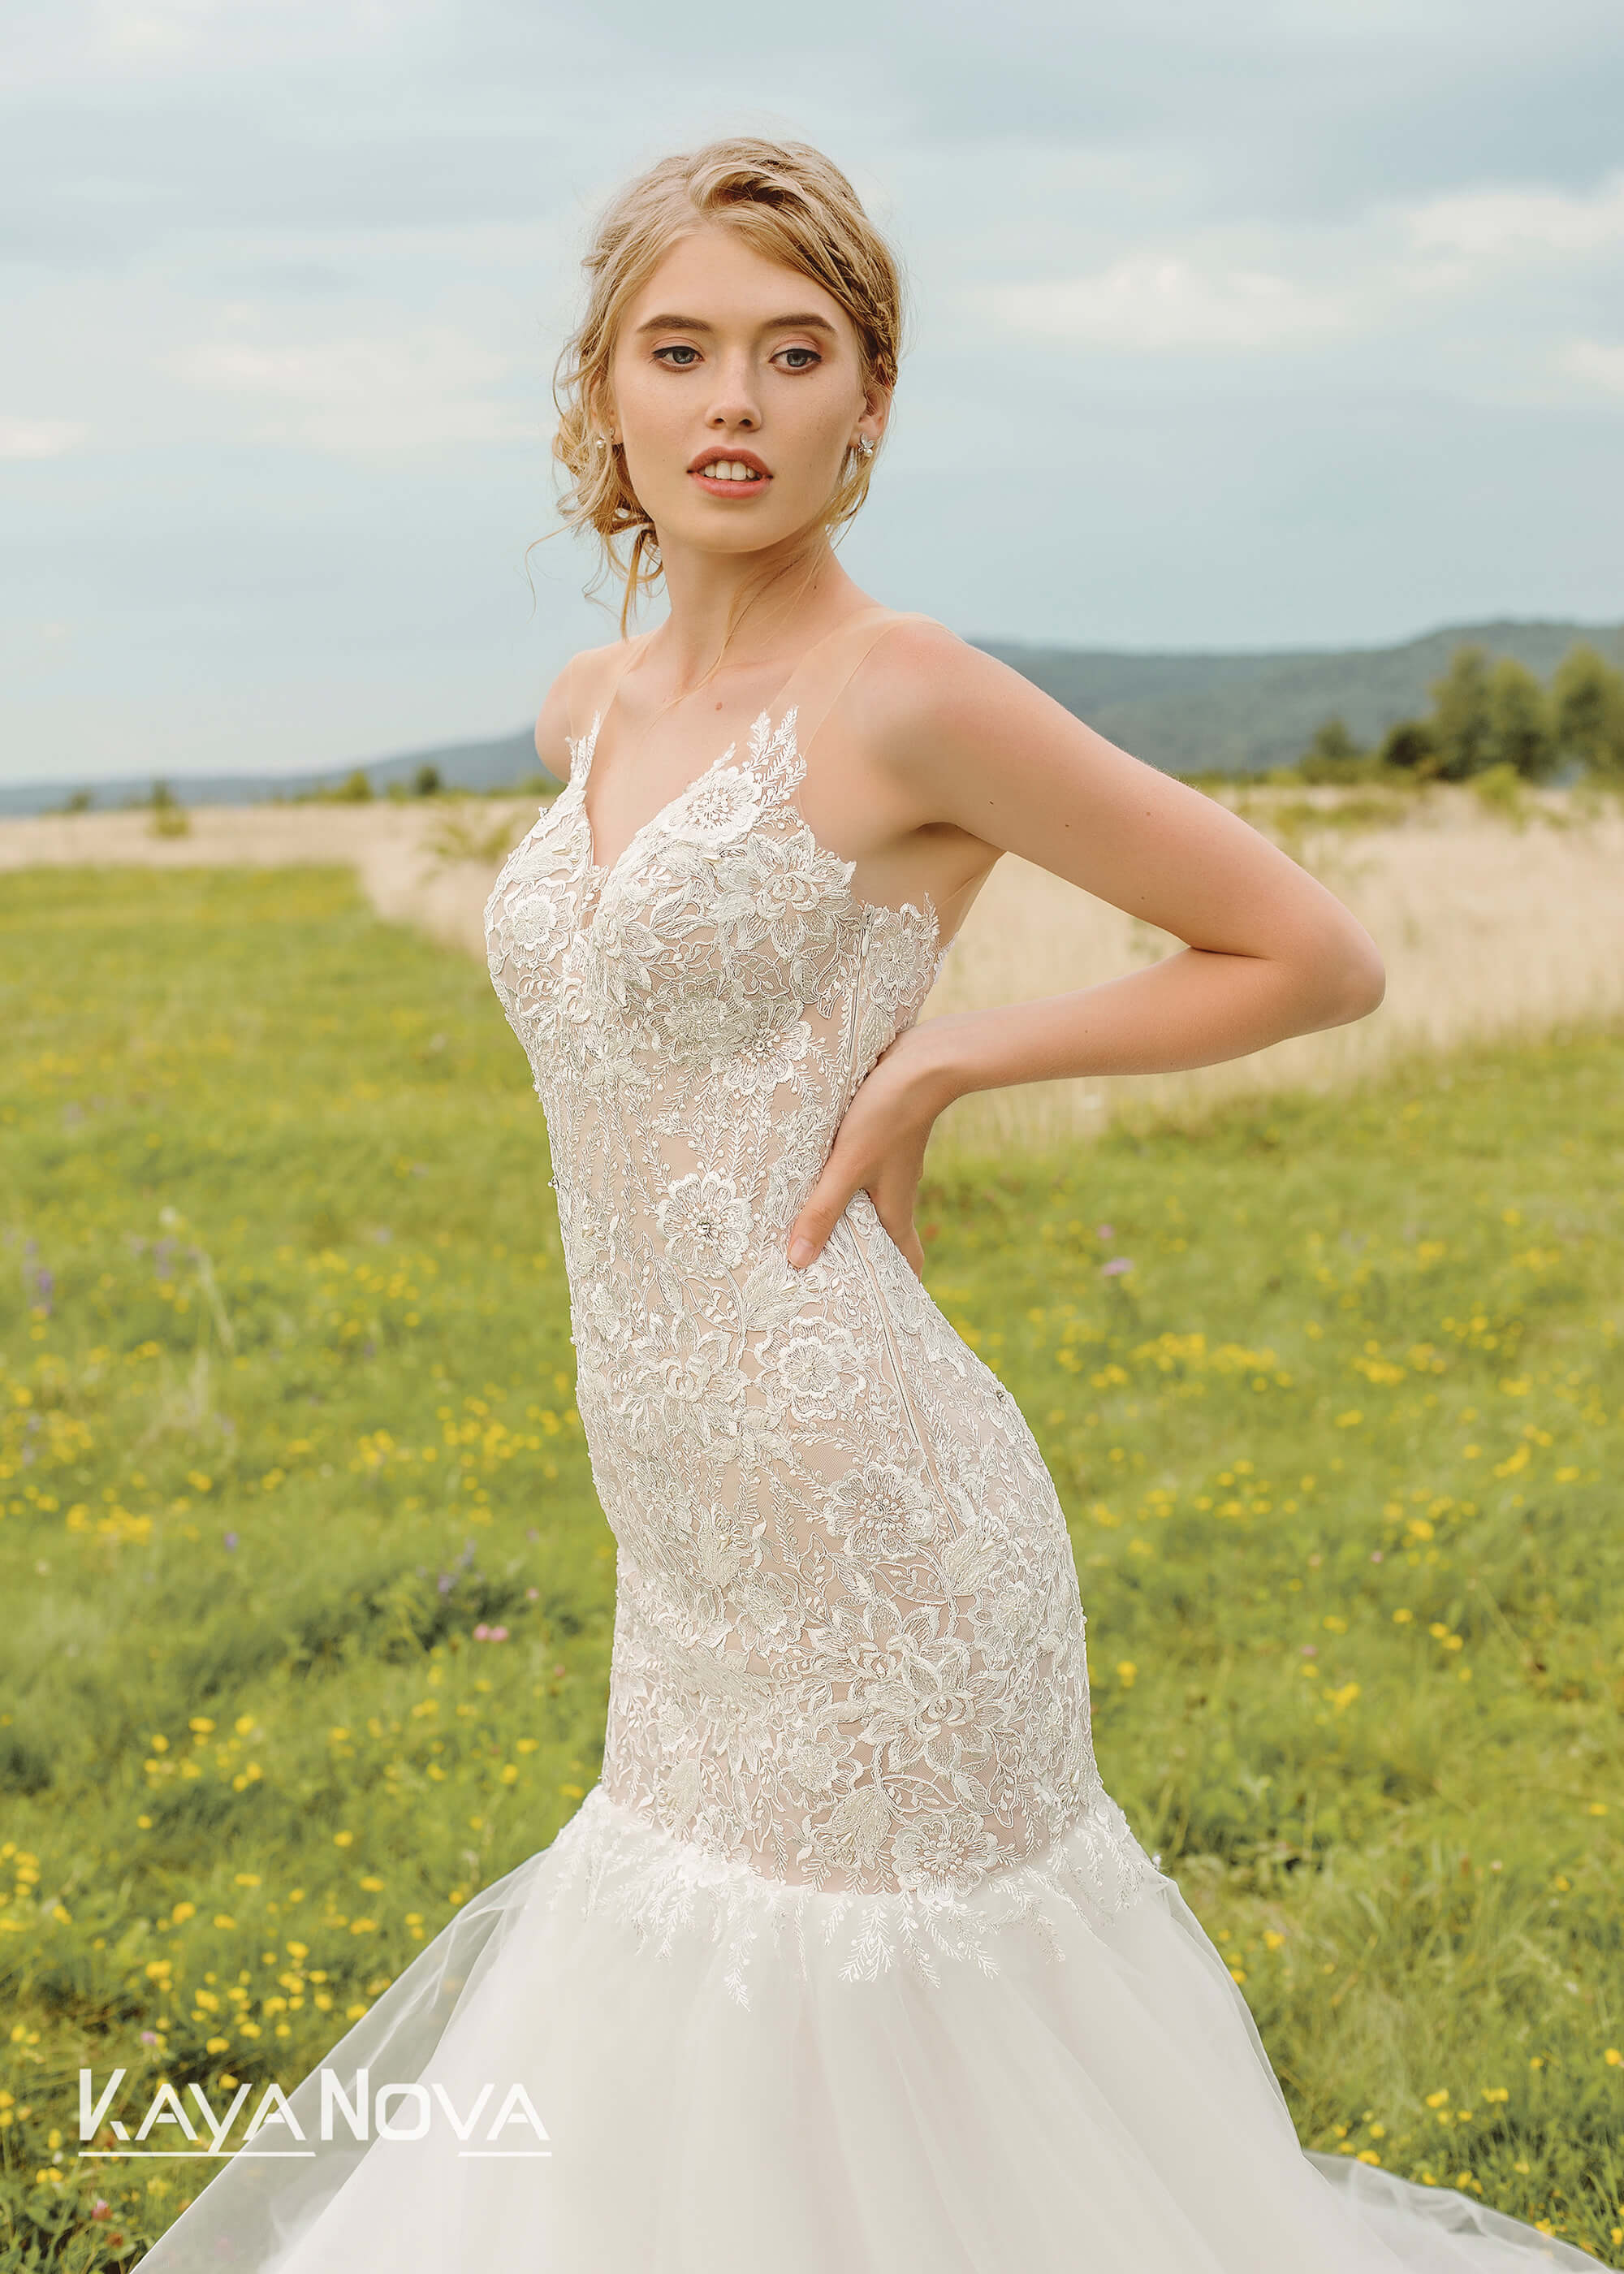 https://kayawedding.com/images/stories/virtuemart/product/Juliette 2.jpg